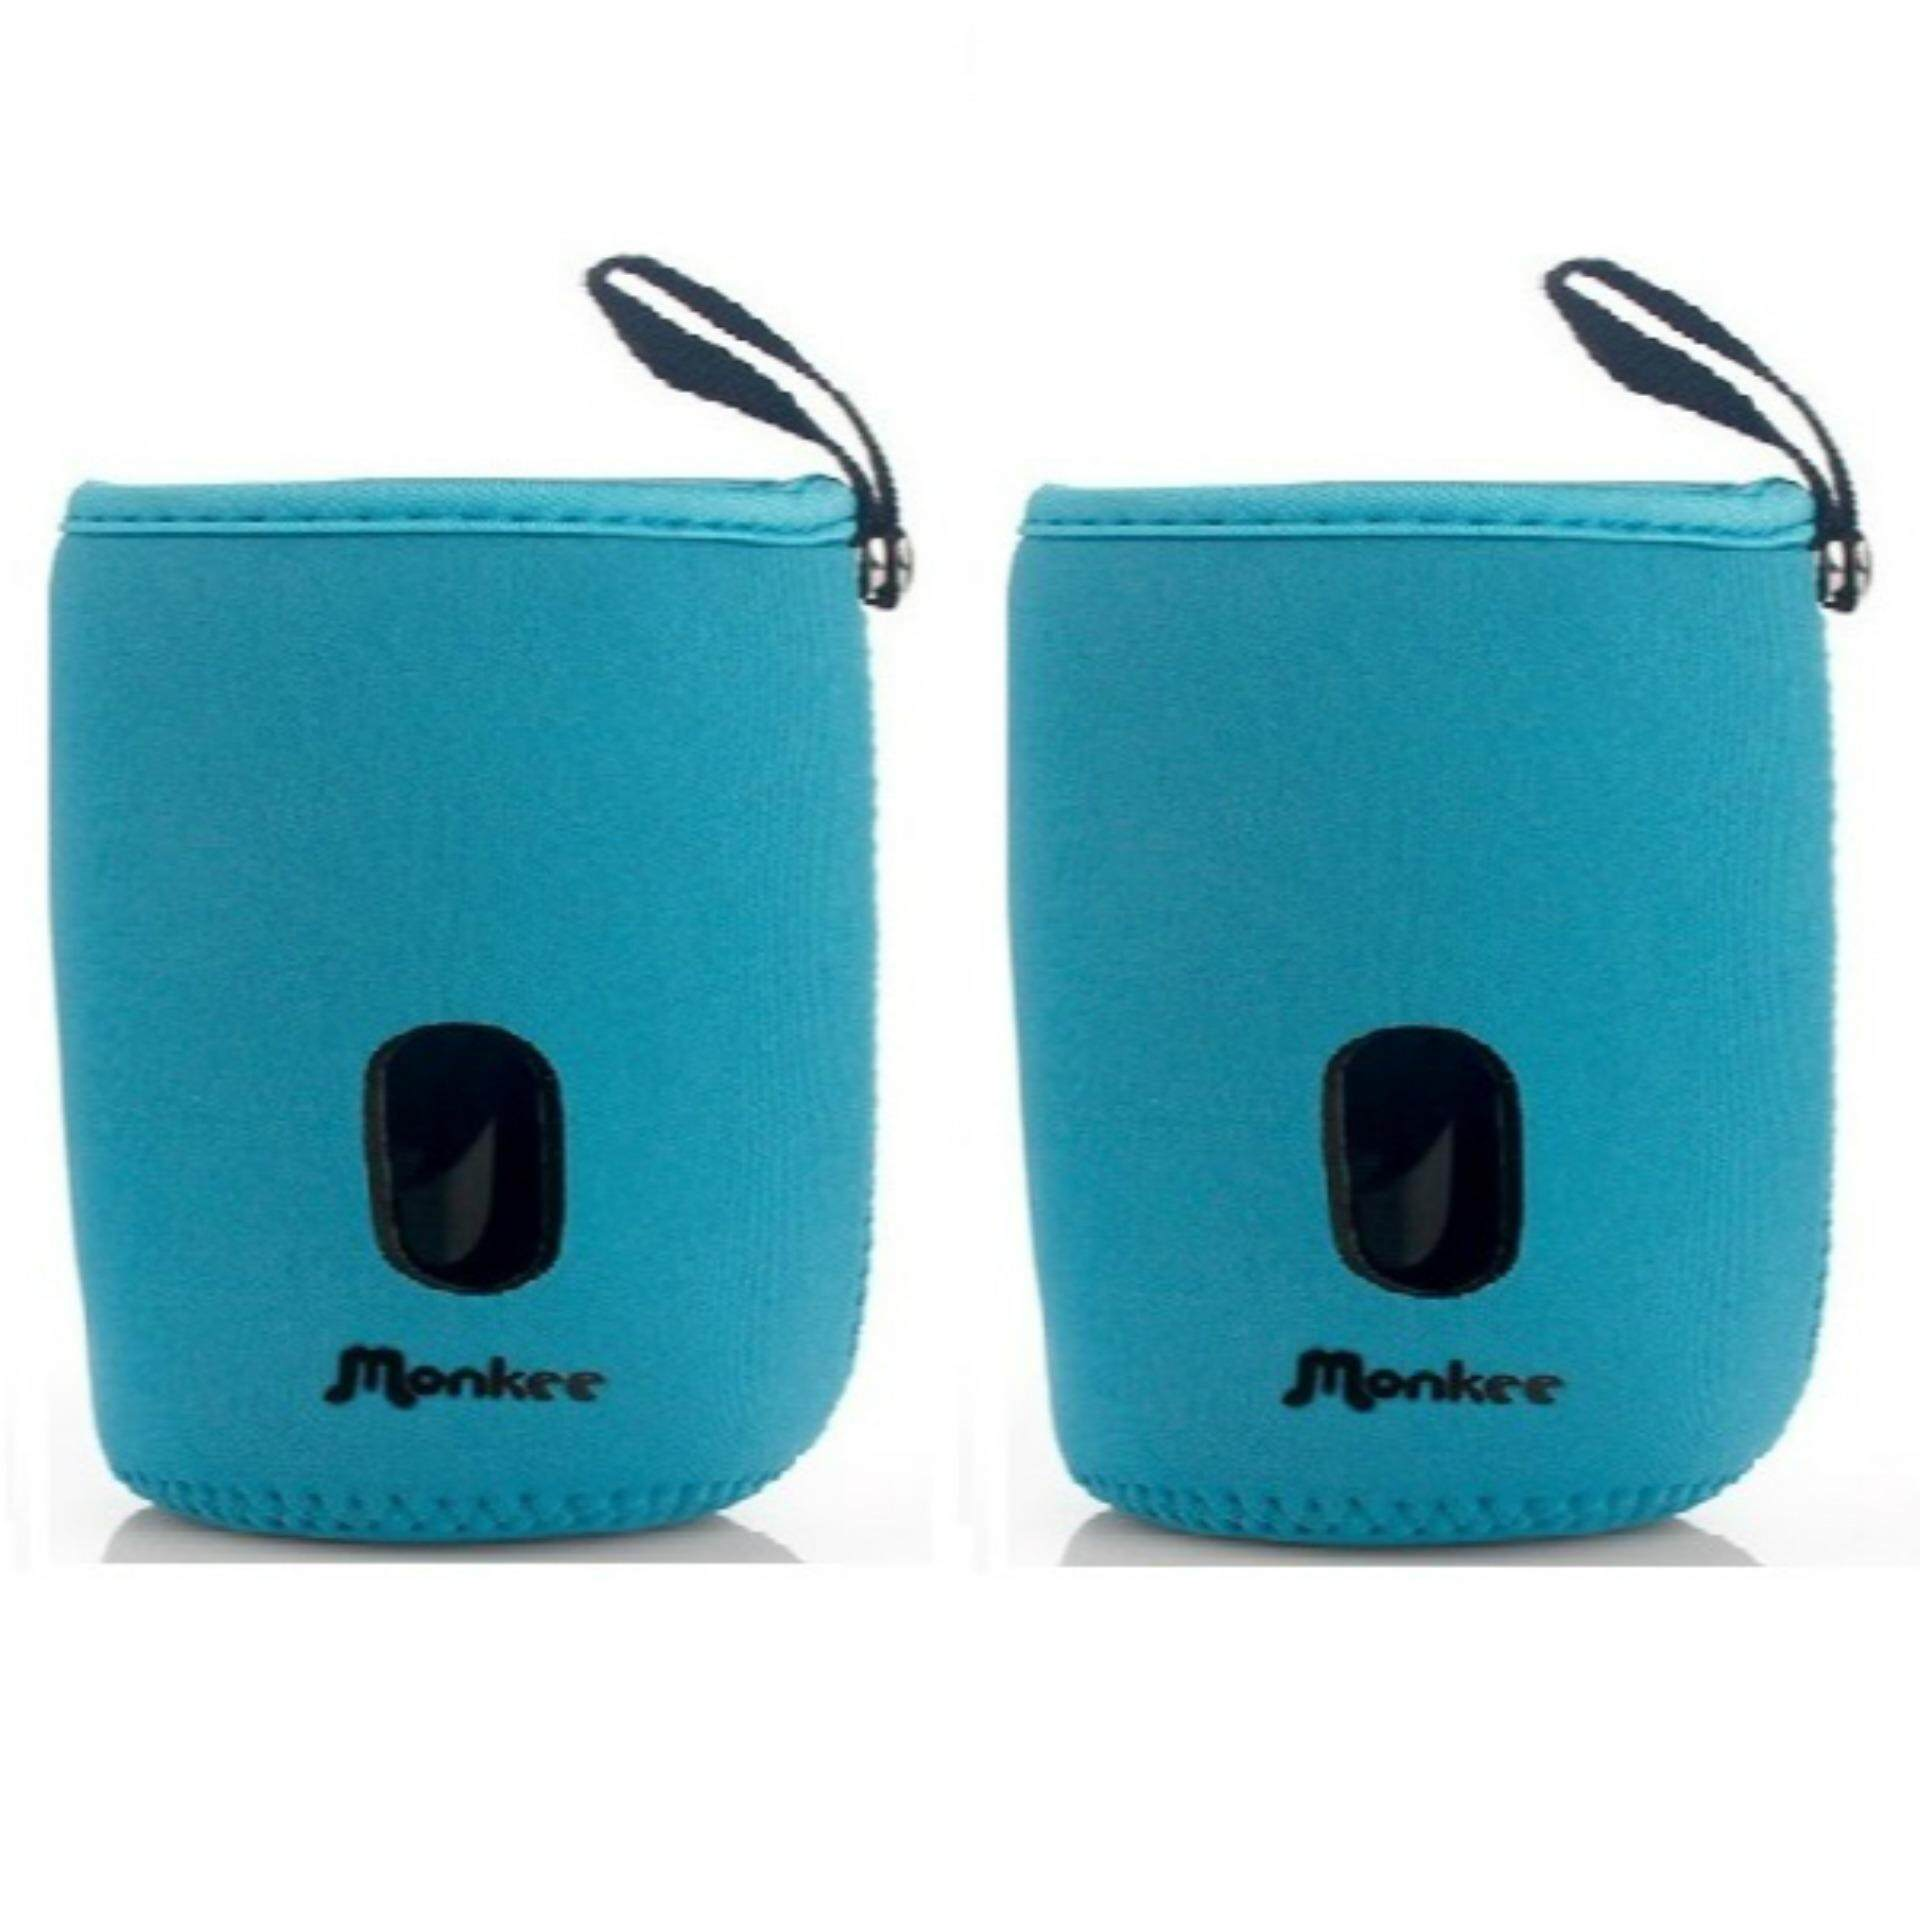 Set of 2 Baby Bottle Warmer Pouches: Fits 160ml Bottles (2 Short) - Blue